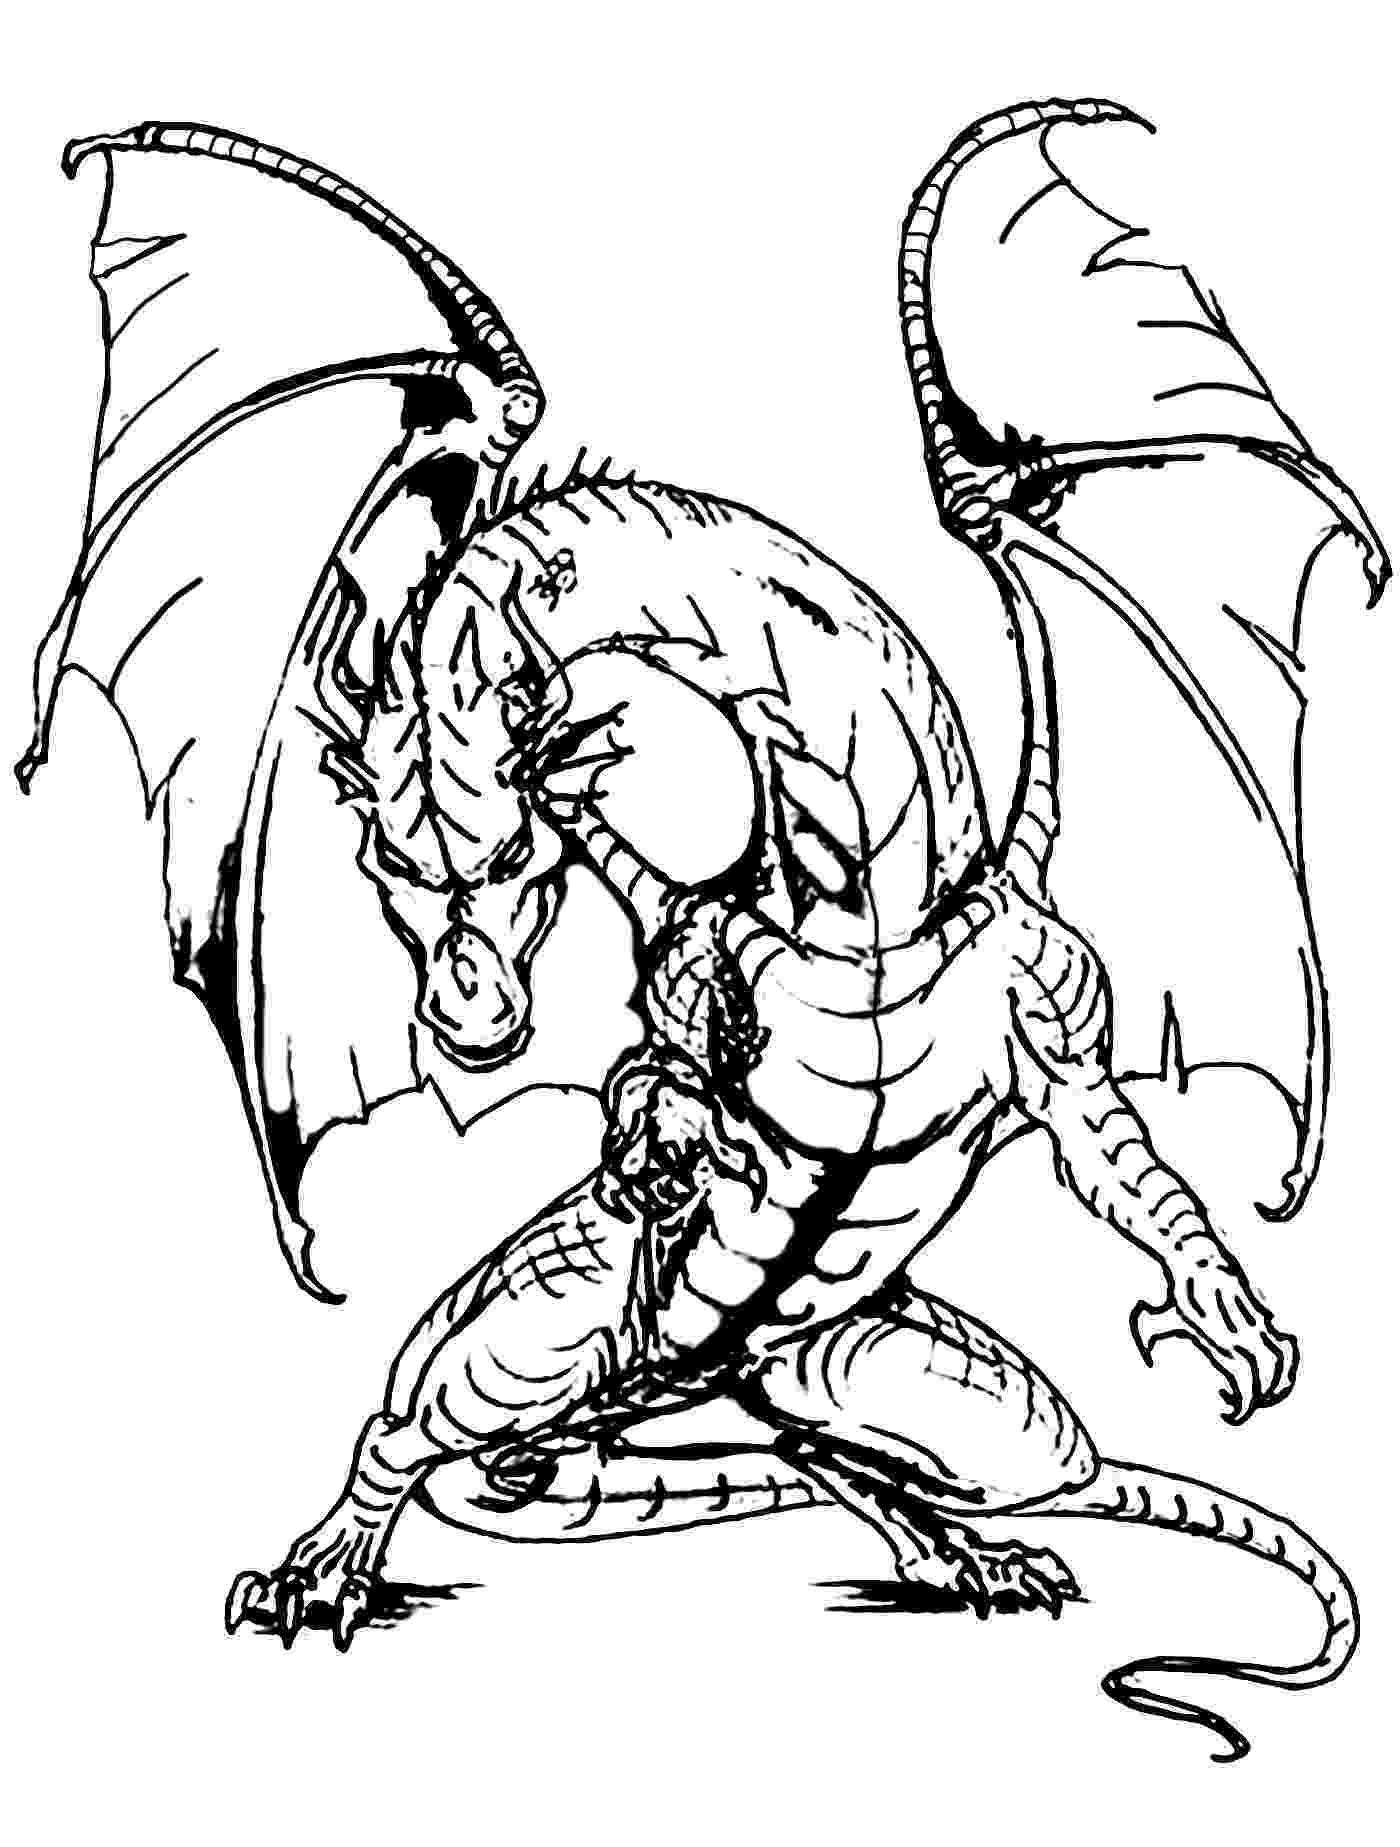 dragon color sheets coloring pages dragon coloring pages free and printable sheets color dragon